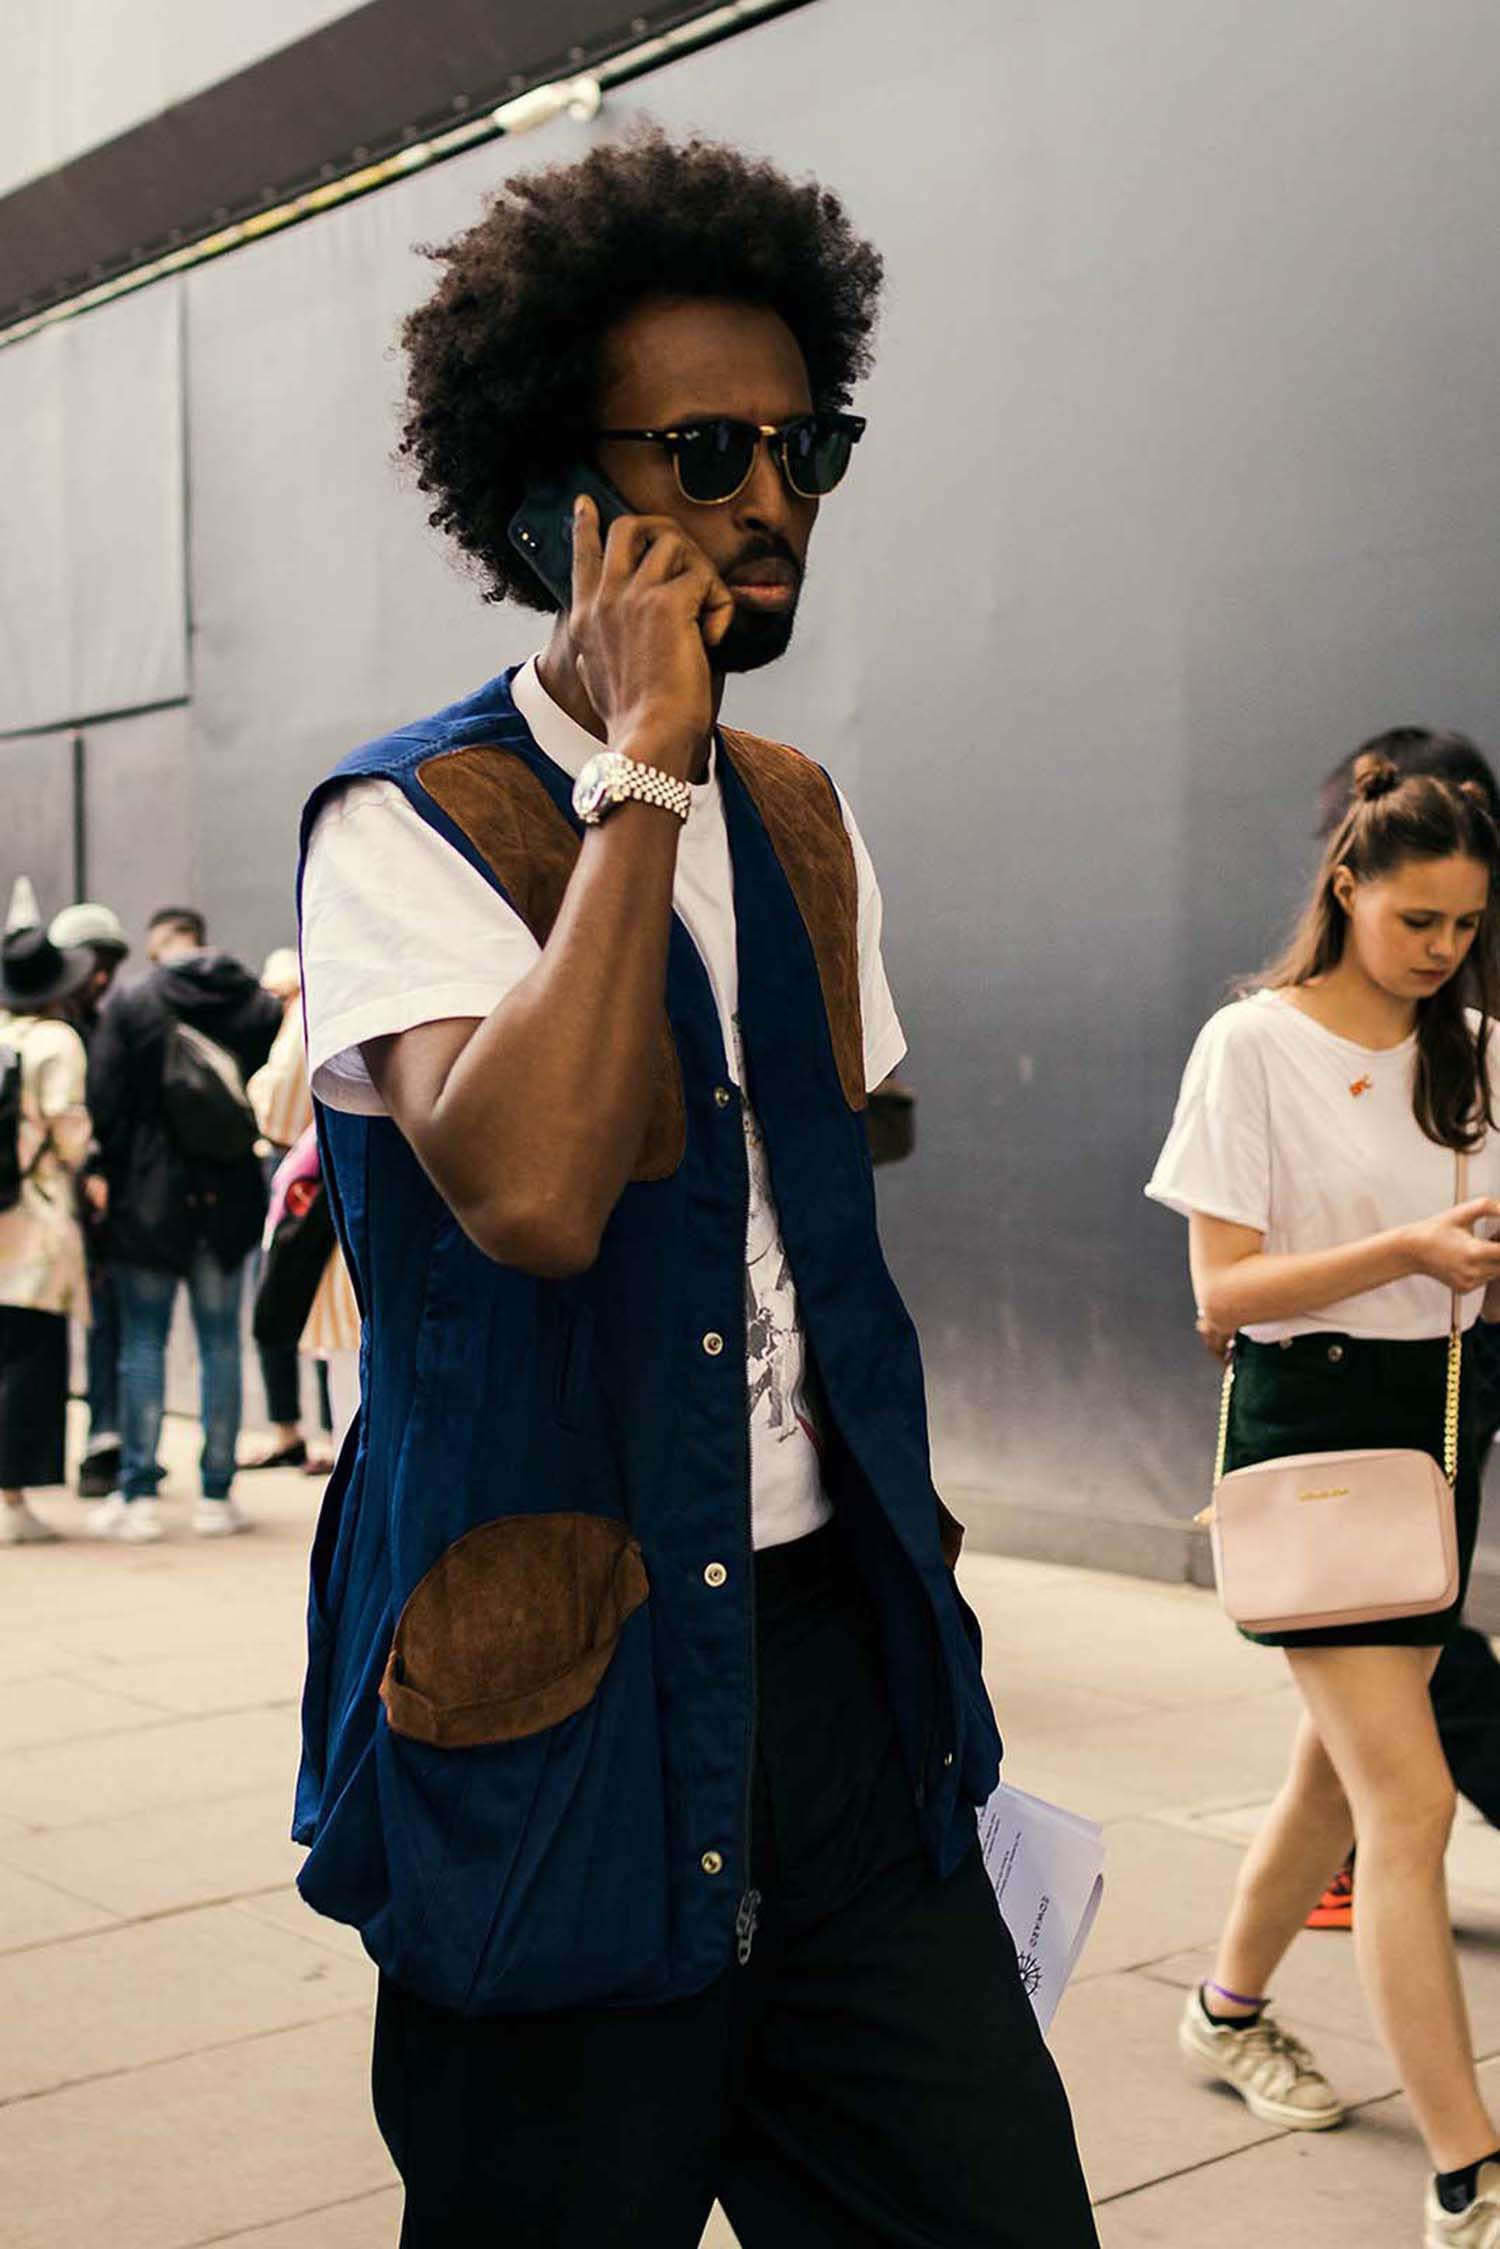 Liban Mohammed captured outside the men's fashion shows at London Fashion Week Men's. (LFWM Street Style by Olajide (JJ) Smith (Spotted By Mr. Smith for Sagaboi. Diversity in Street Style. Representation in stock imagery.